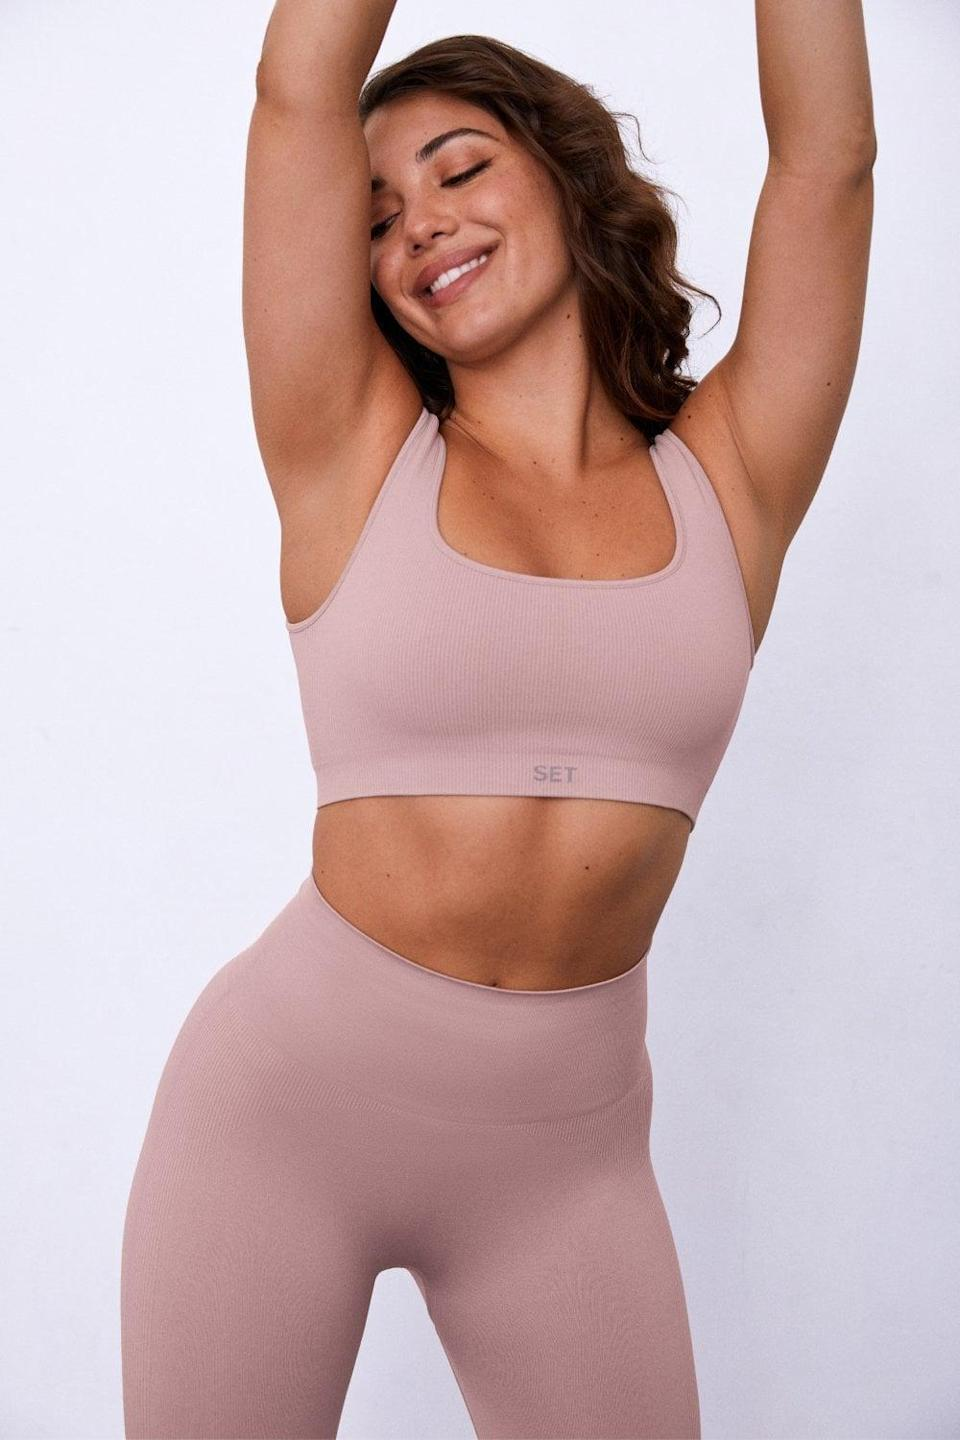 """<p>""""Lately I've been loving this <span>Sculptflex Box Cut Sports Bra</span> ($45) from Set Active. The amethyst color is so pretty and unique, and the simple straps and clean lines of the bra are really flattering. Since the brand sent it to me to try out, this sports bra has been my go-to for low-impact workouts and yoga flows."""" - Maggie Ryan, assistant editor, Fitness</p>"""